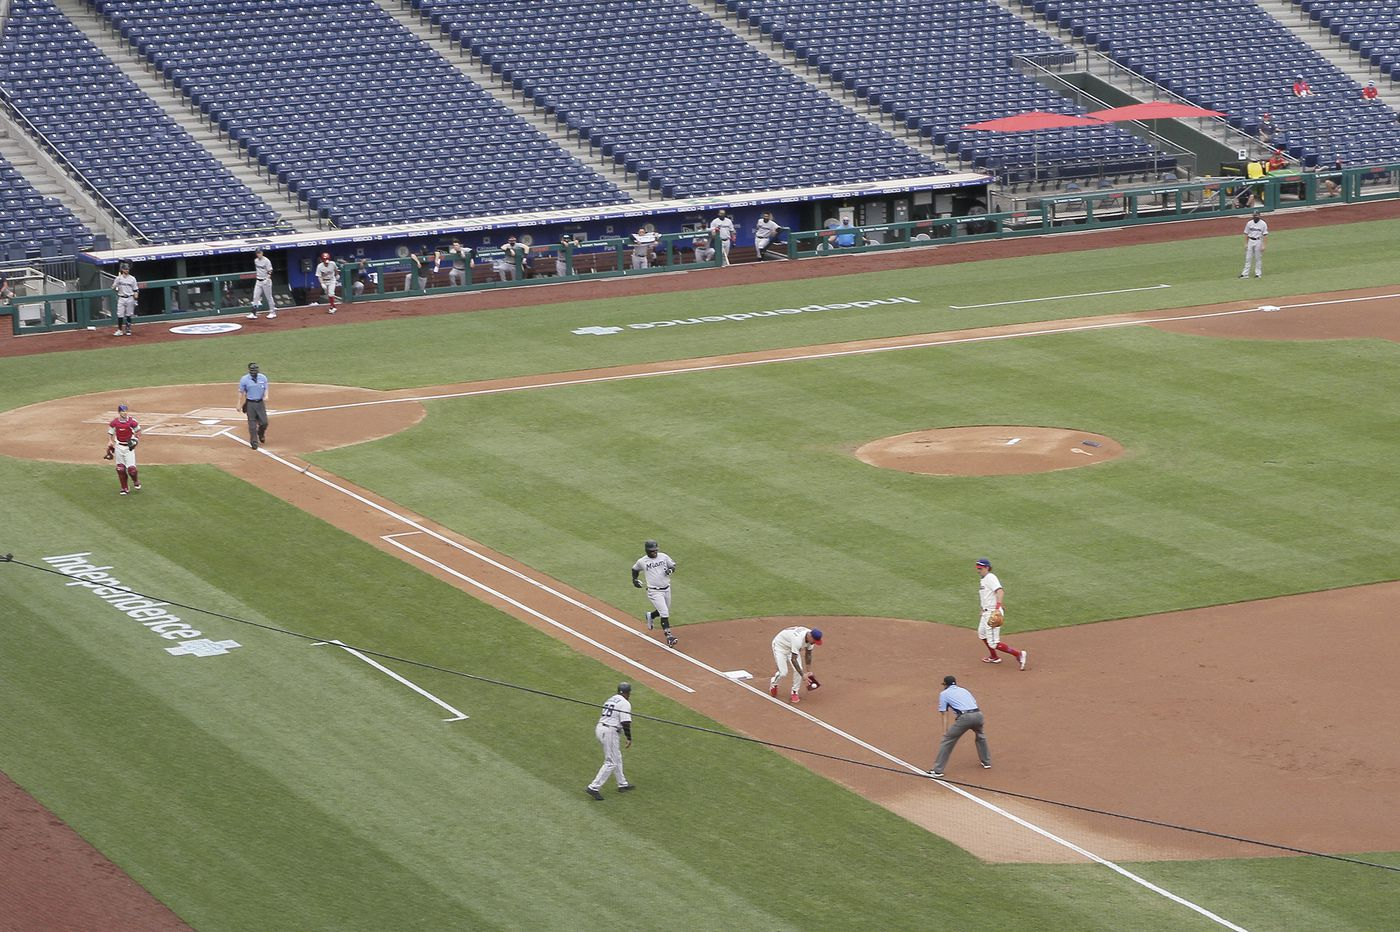 After COVID-19 outbreak, the Marlins decided via group text message to play Sunday vs. the Phillies